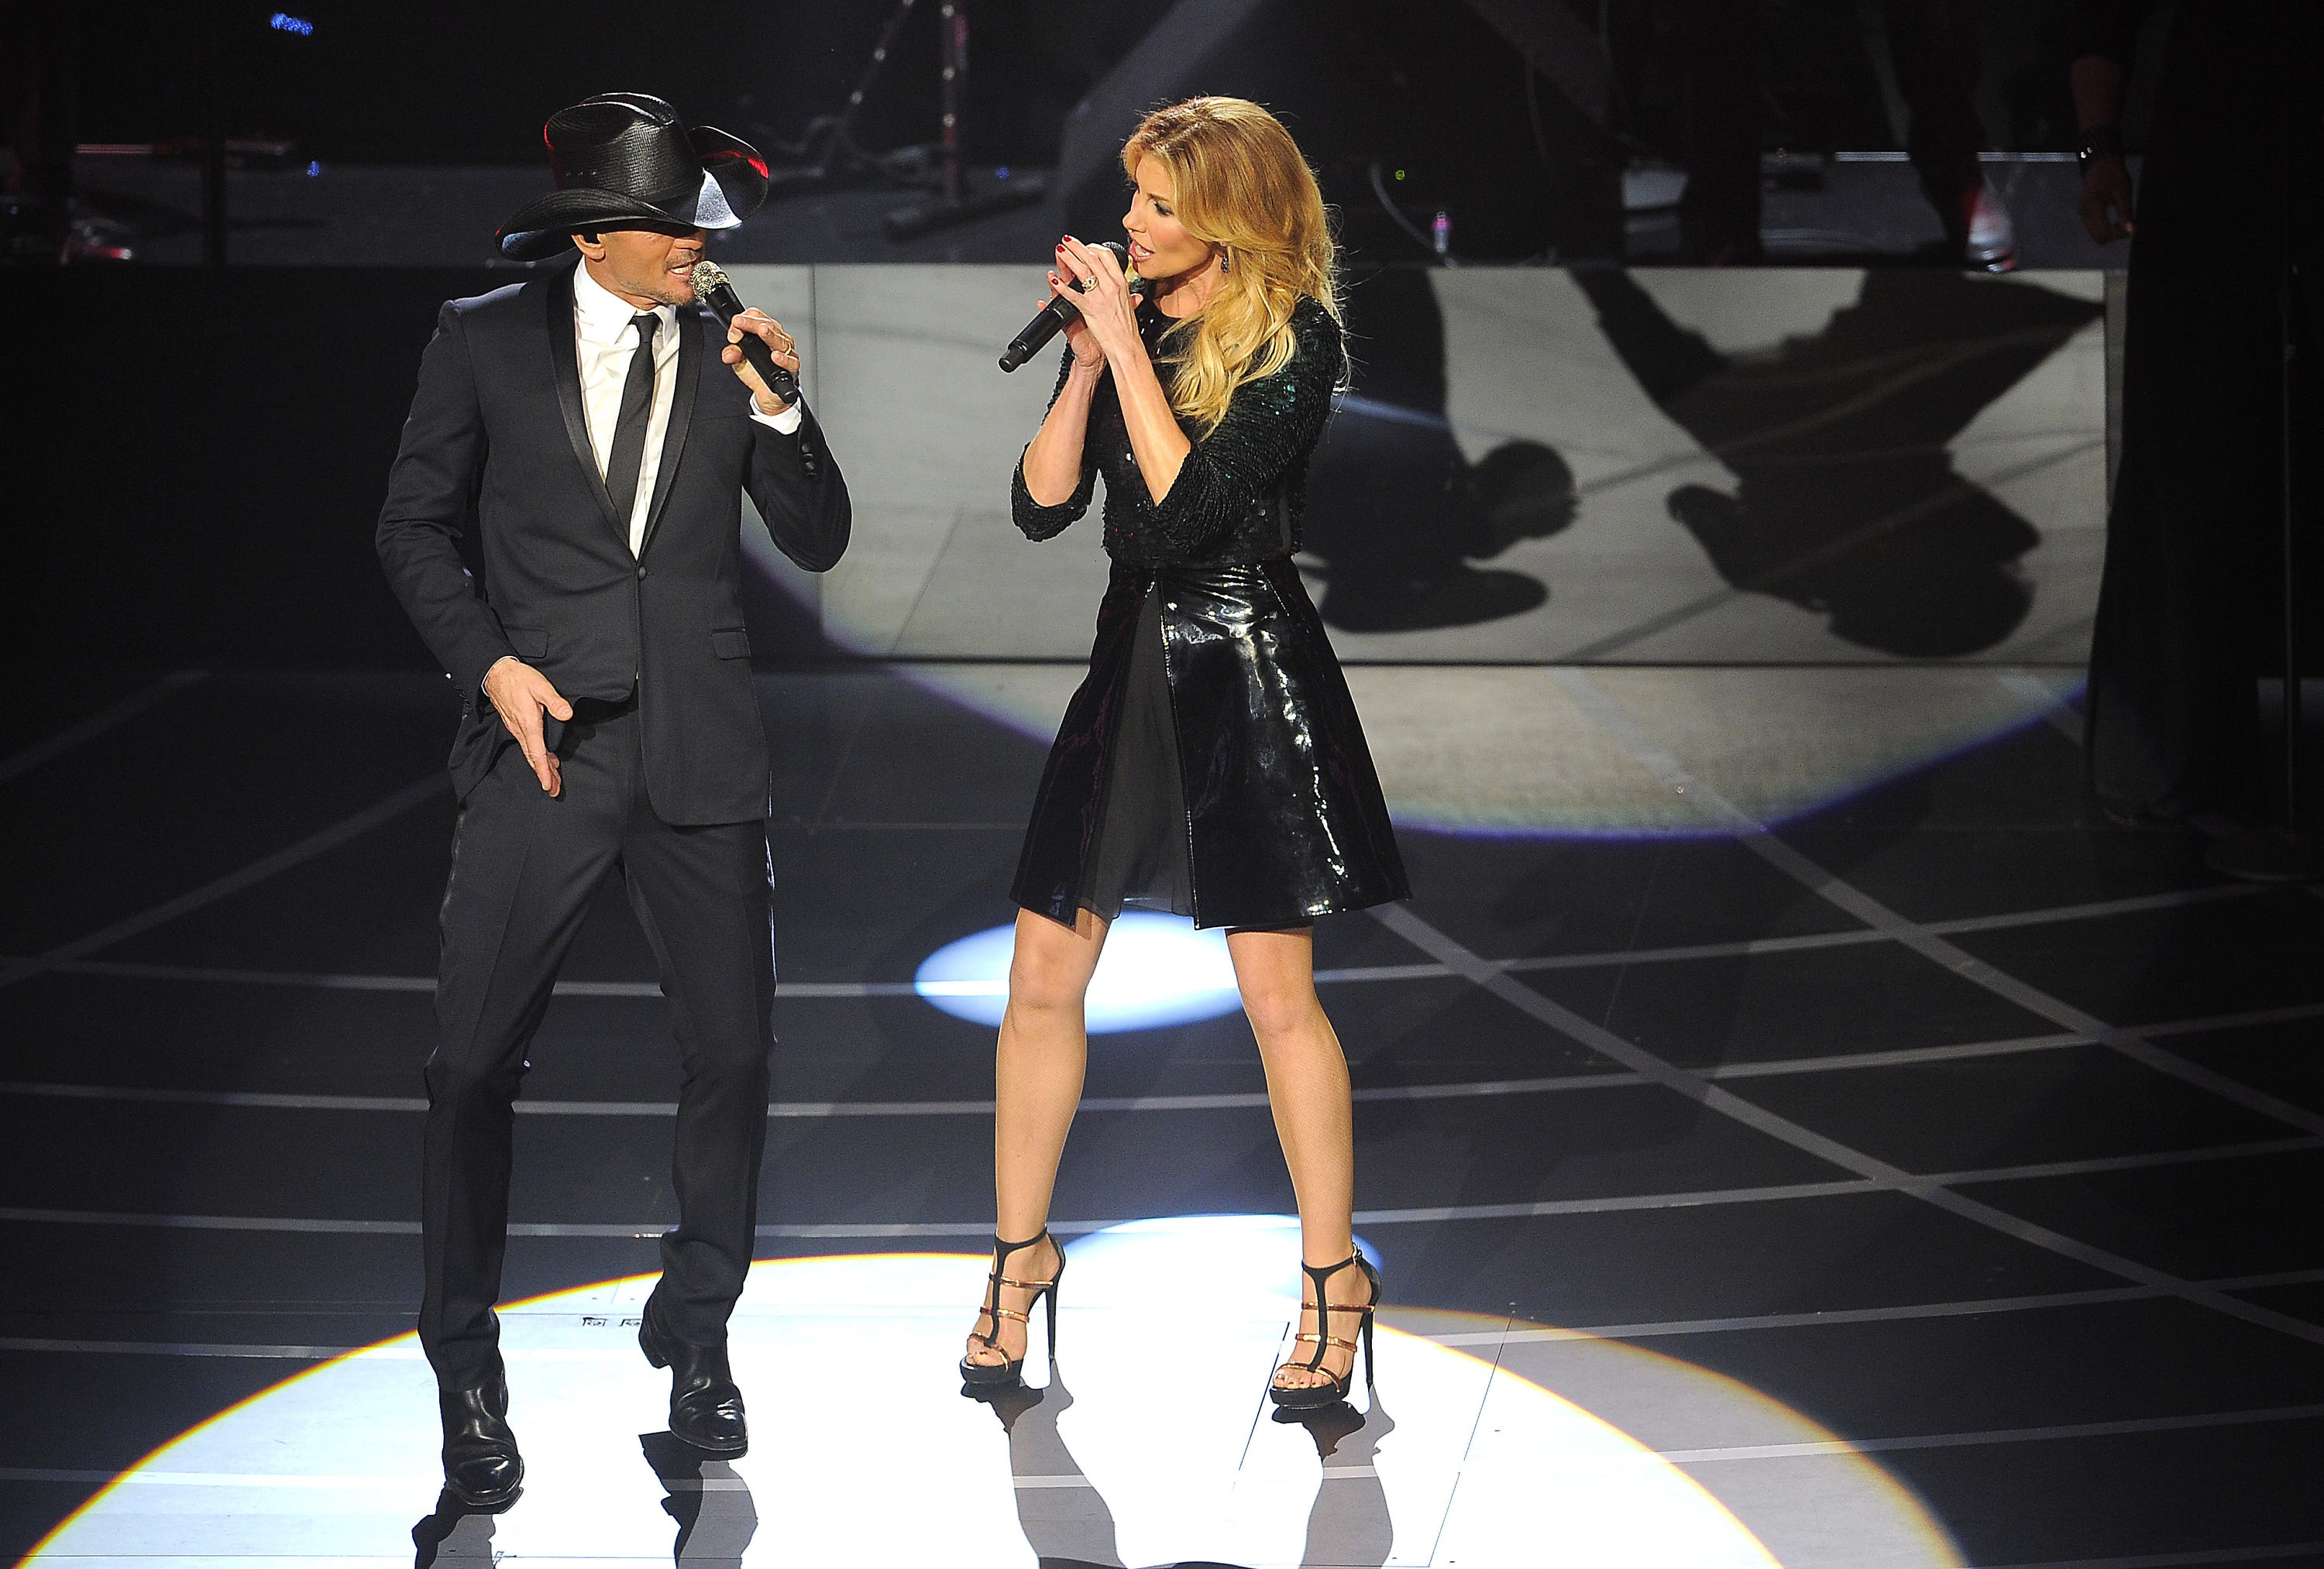 Are Tim McGraw and Faith Hill the mysterious Sam \u0026 Audrey?